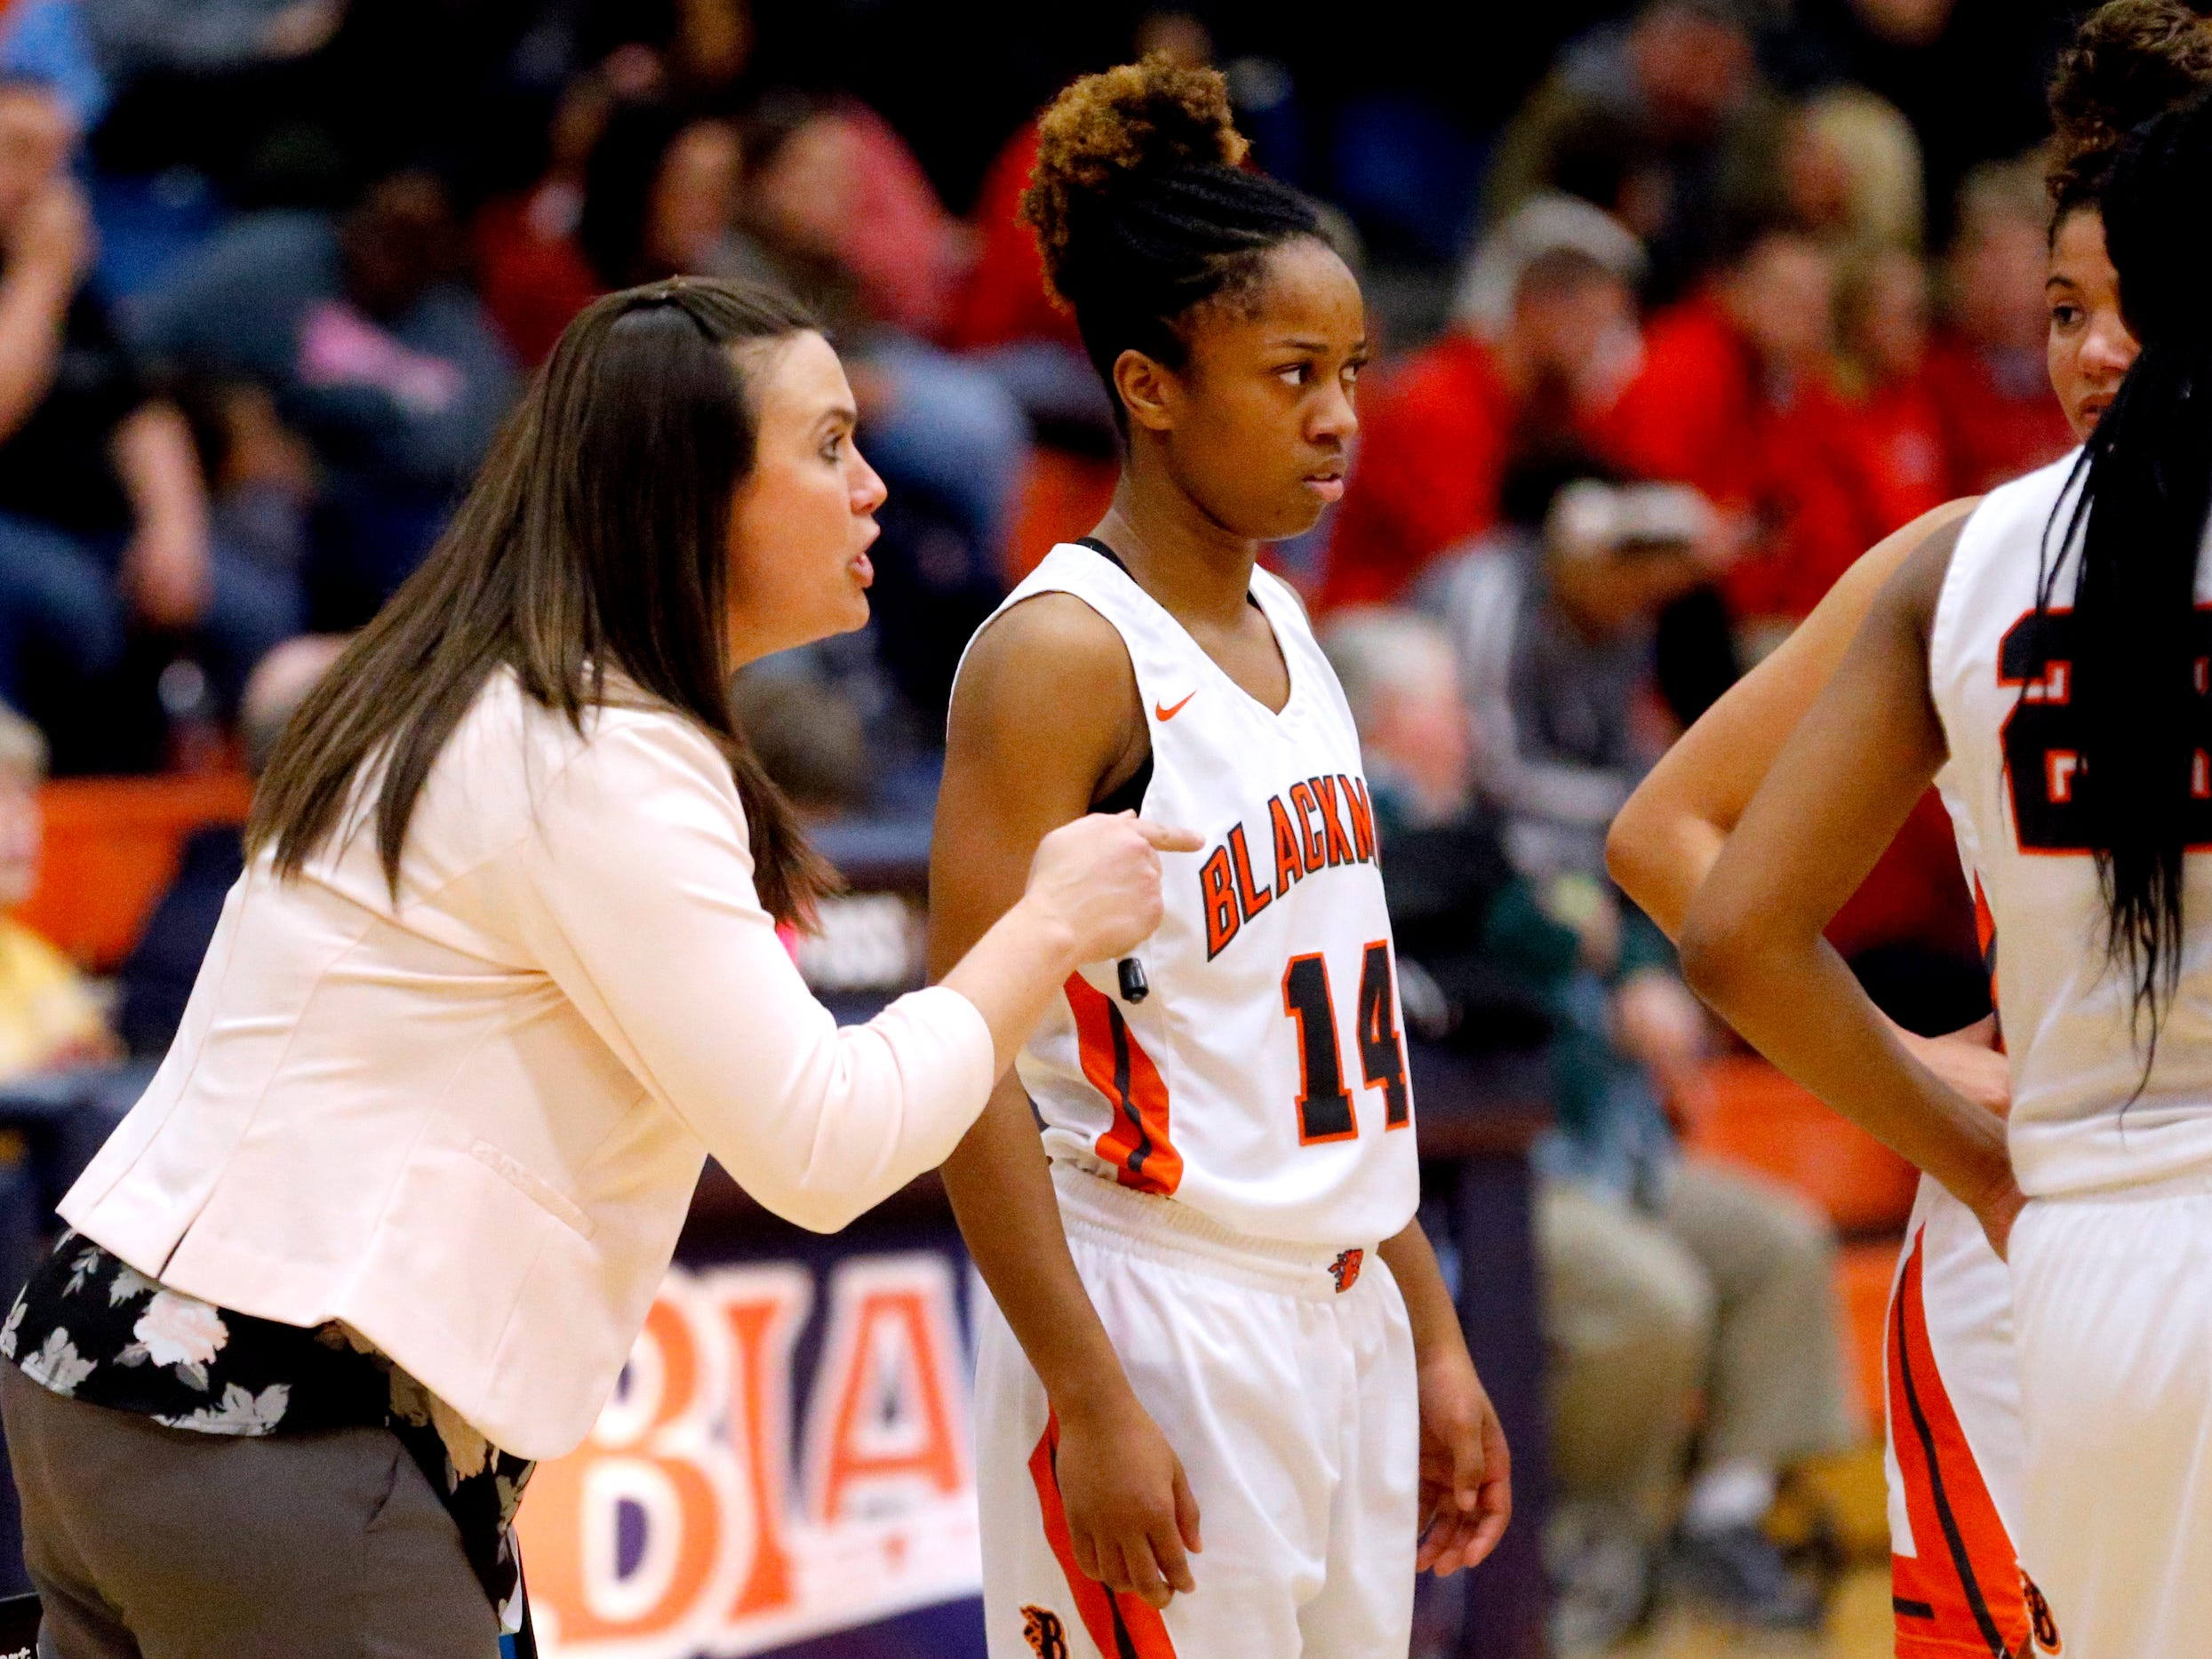 Blackman's head coach Wendi Scott talks with Blackman's Joelle Patton (14)  during a break in the game against Oakland on Friday, Feb. 8, 2019.